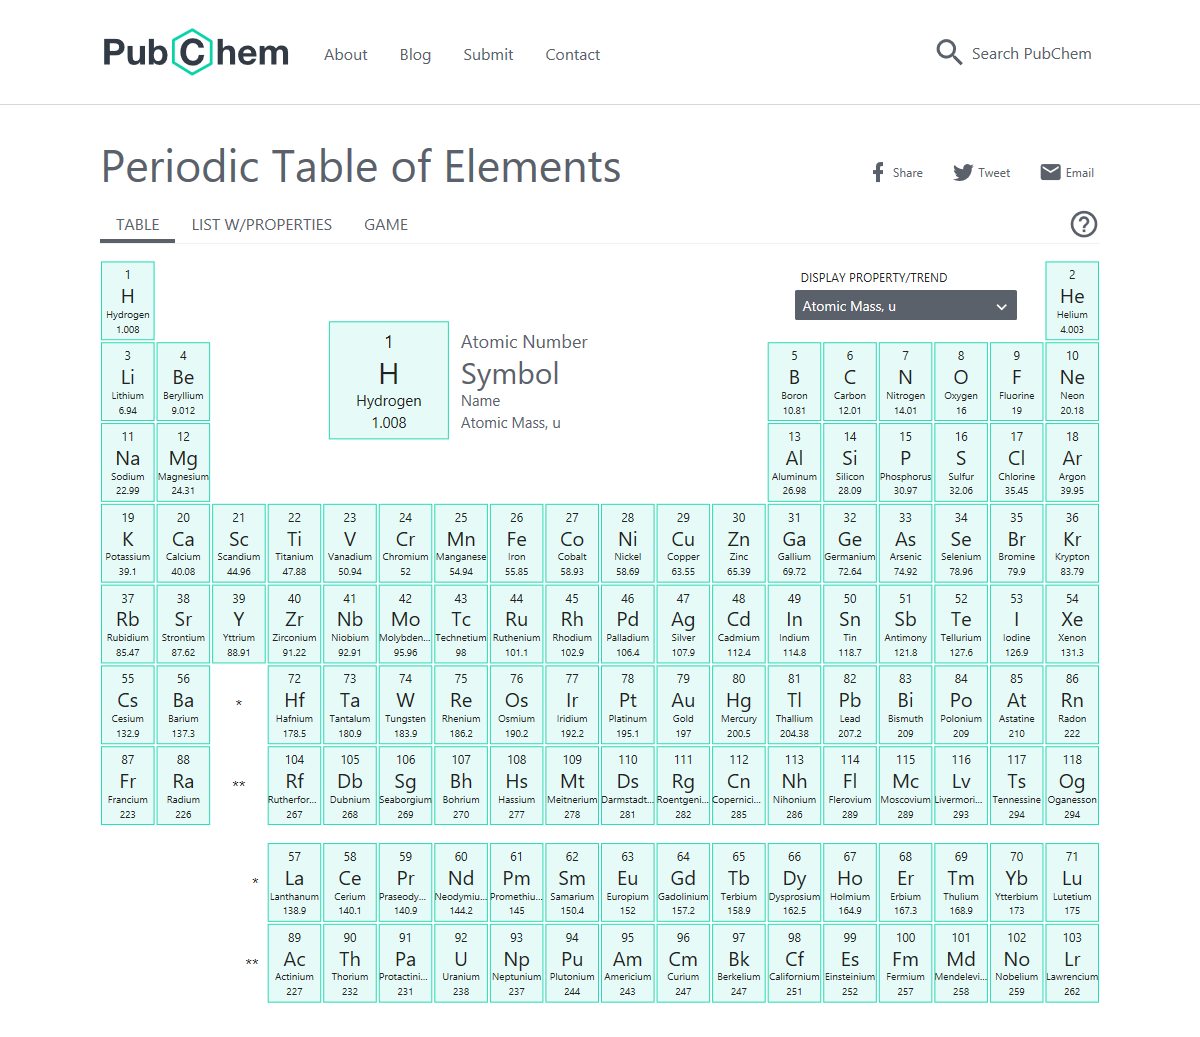 PubChem Periodic Table